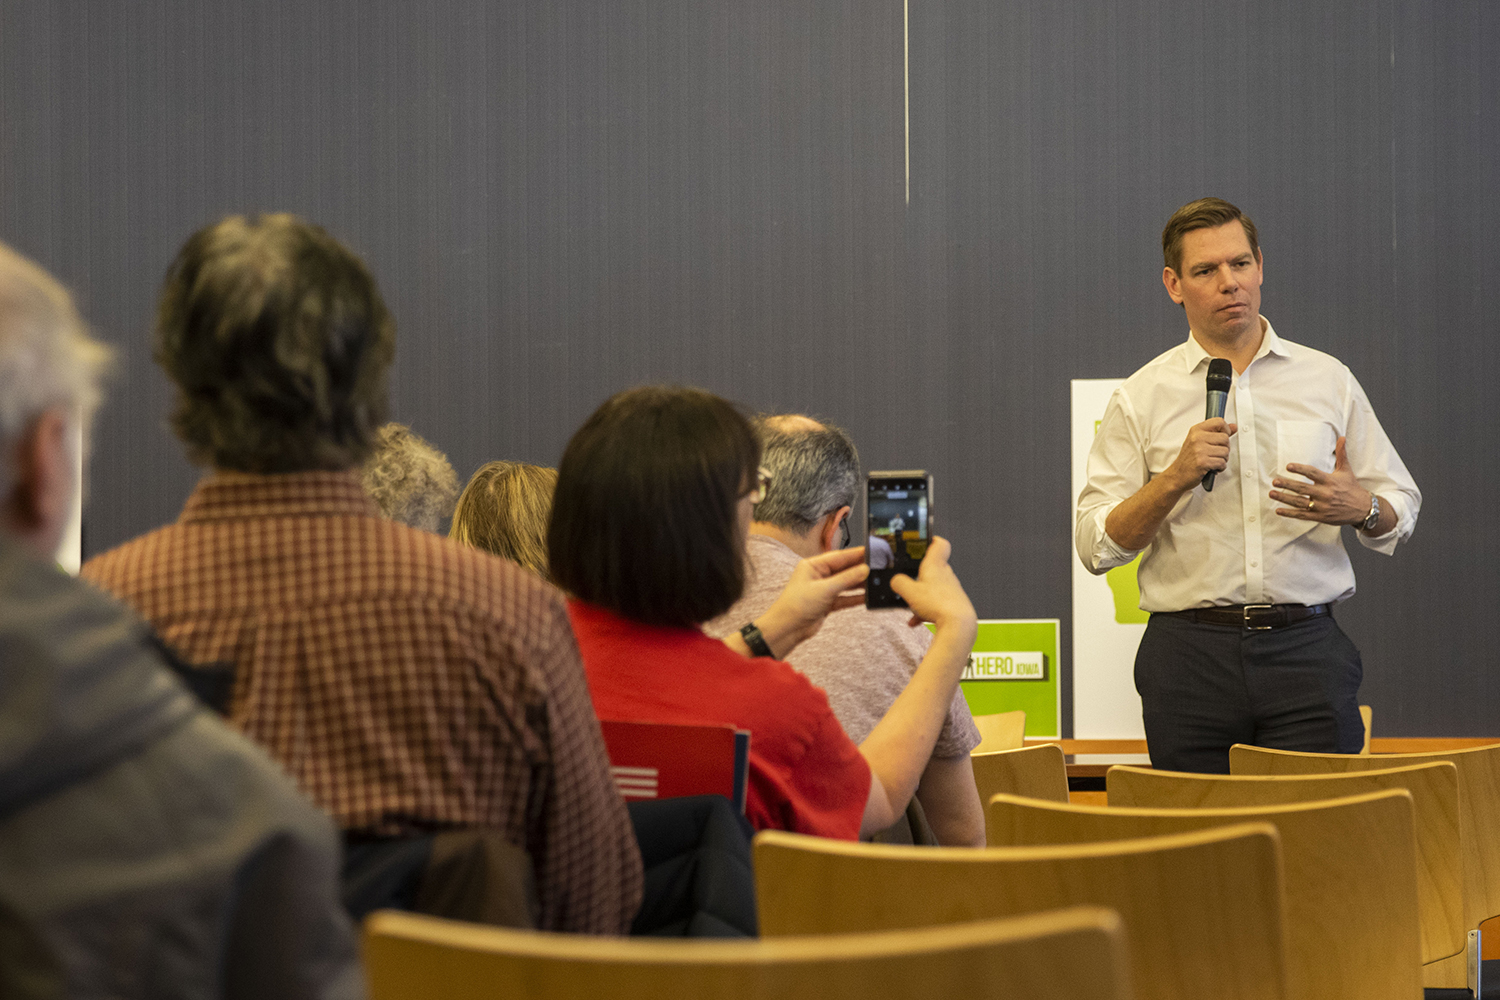 U.S. Rep. Eric Swalwell, D-Calif., speaks during an event at the Iowa City Public Library on Monday, February 18, 2019. Rep. Swalwell is expected to announce a candidacy for President of the United States.